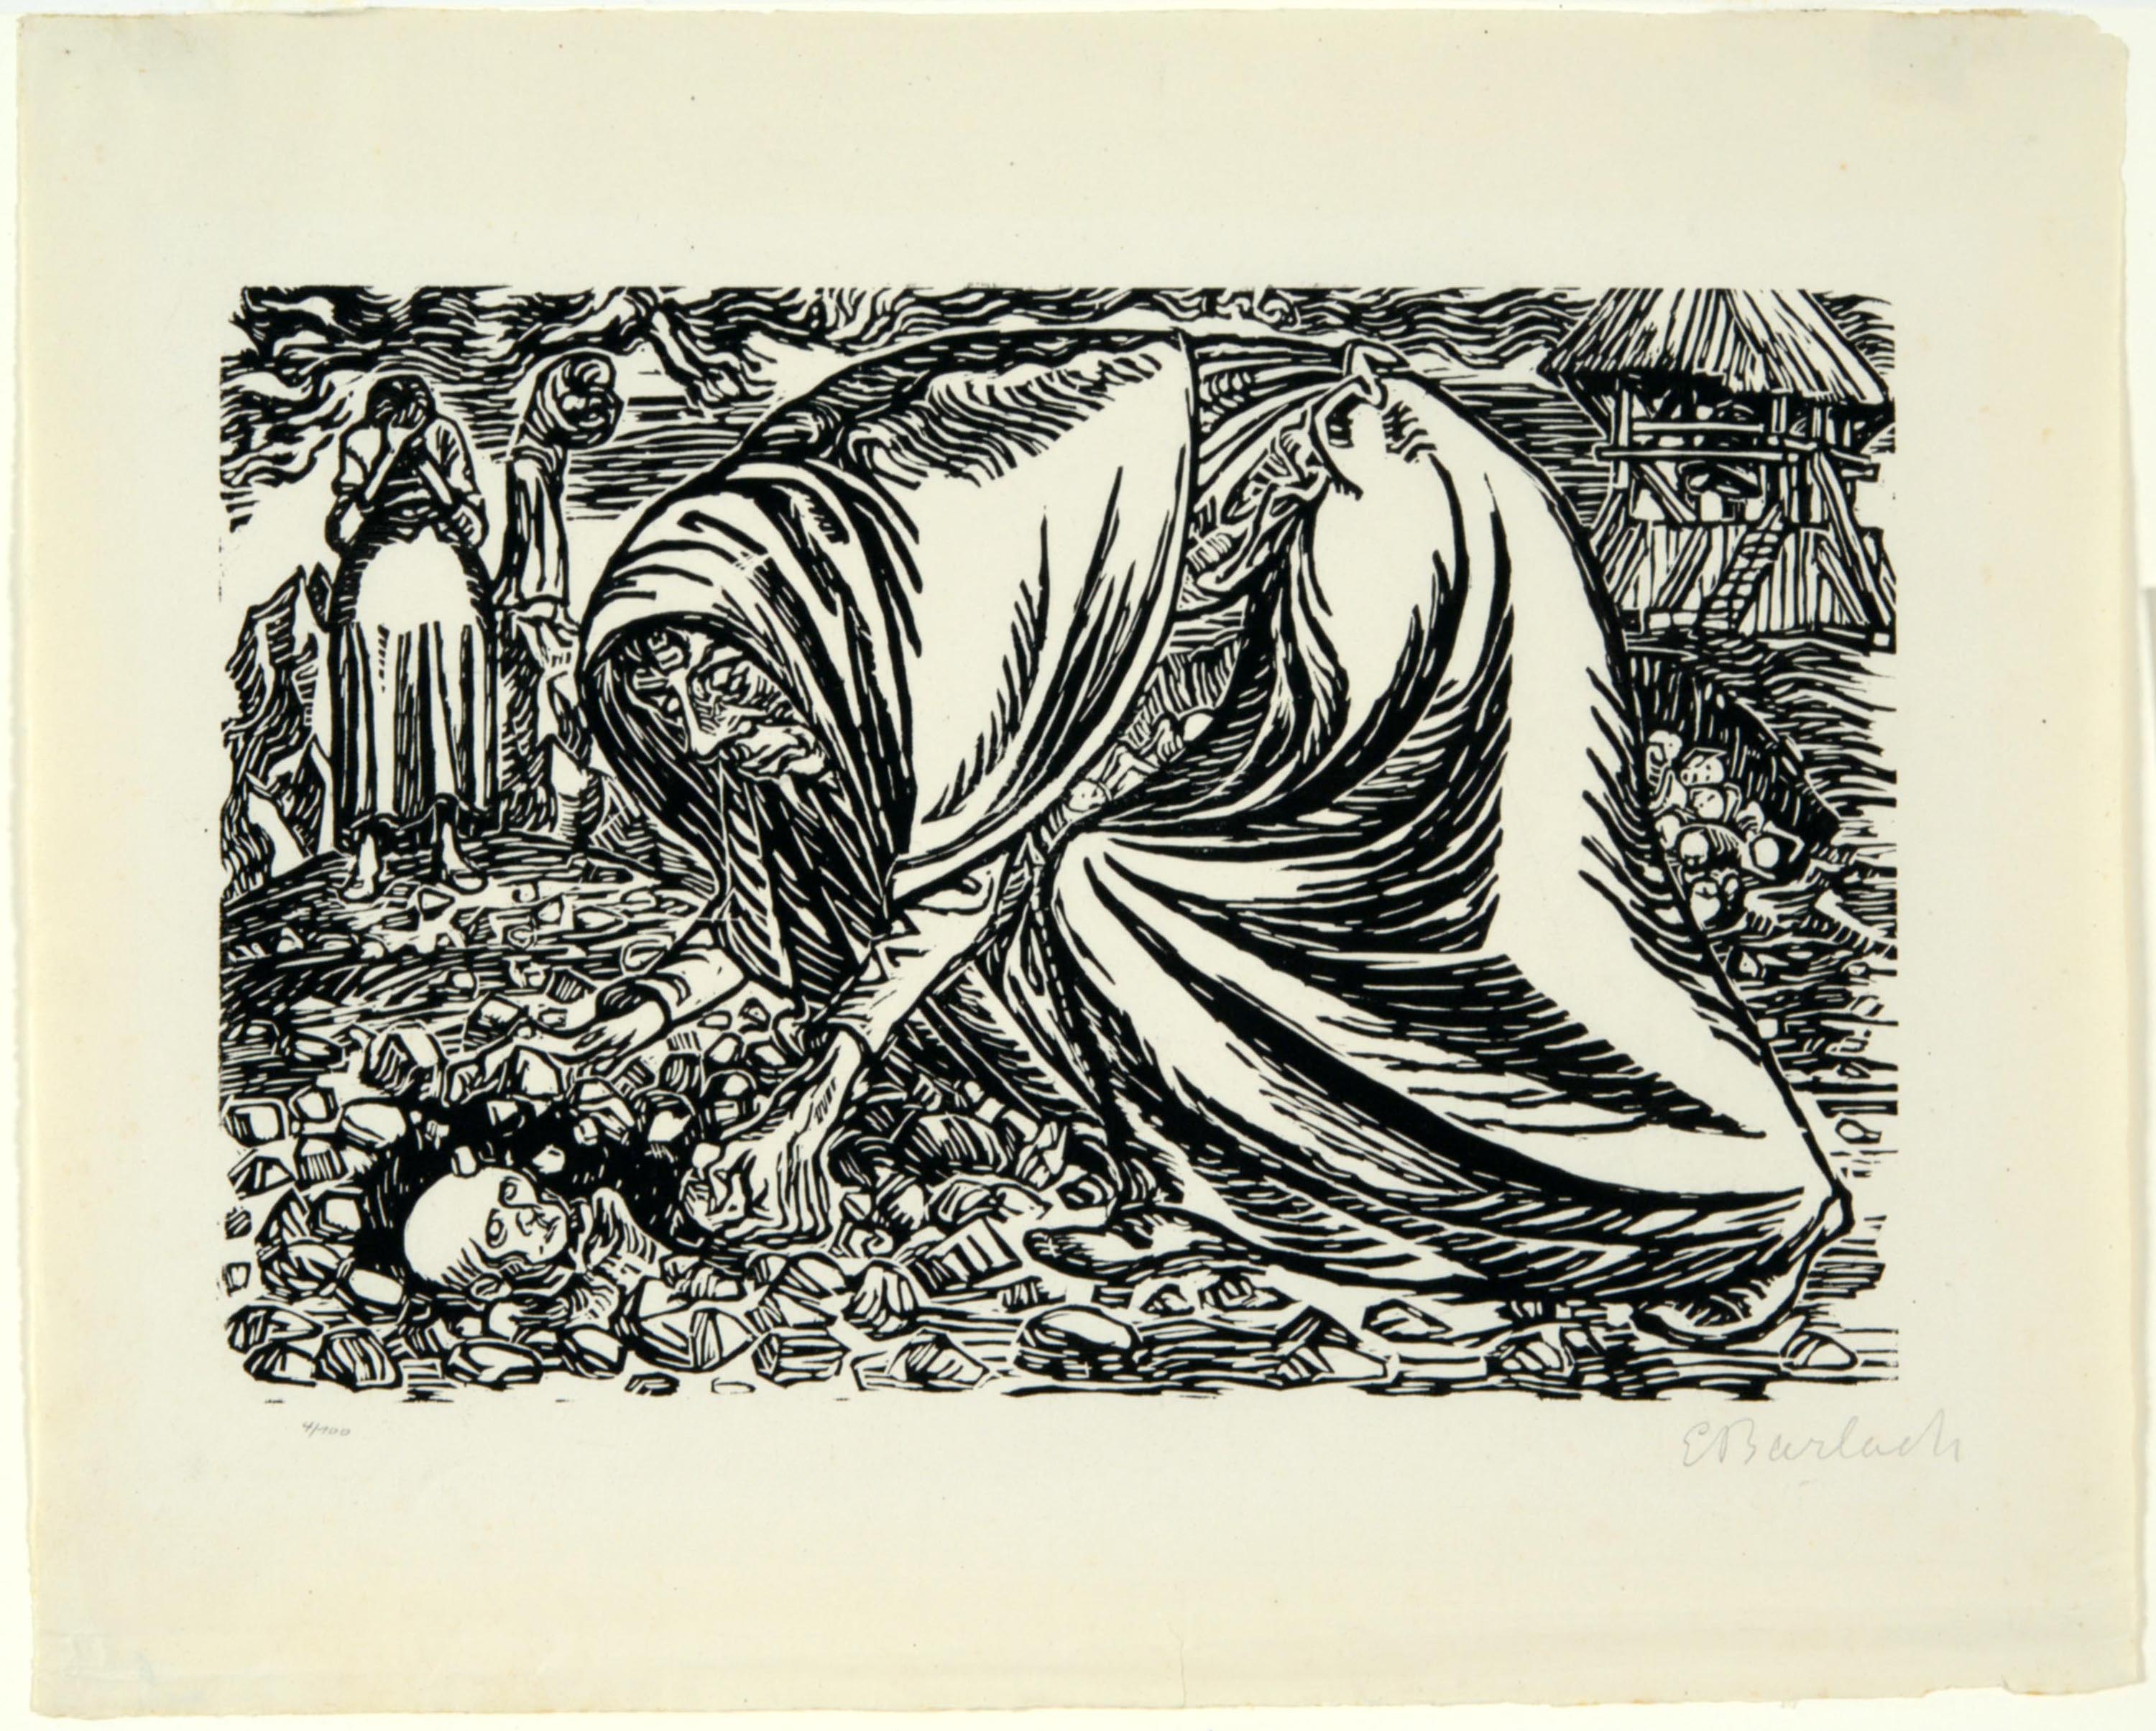 Ernst Barlach, Child's Death, 1919